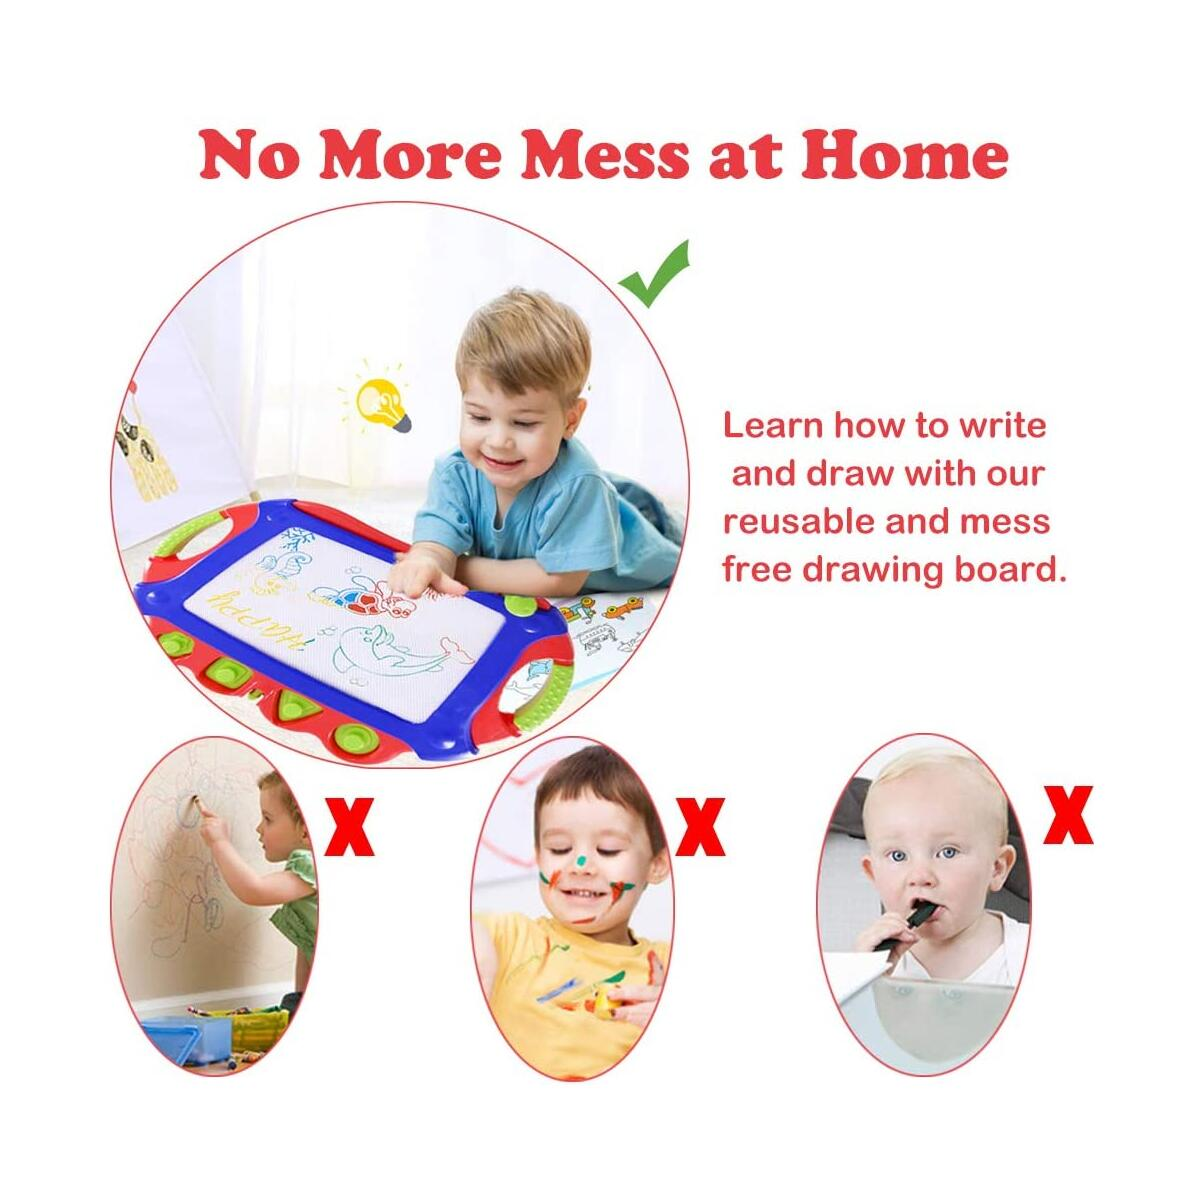 WISHTIME Magnetic Drawing Board for Kids - Large Doodle Board 17.3 Inch Erasable Magnet Writing Sketching Pad 4-Color Travel Size with Stamps and Stencils for Kids Toddlers(Red-Blue)…